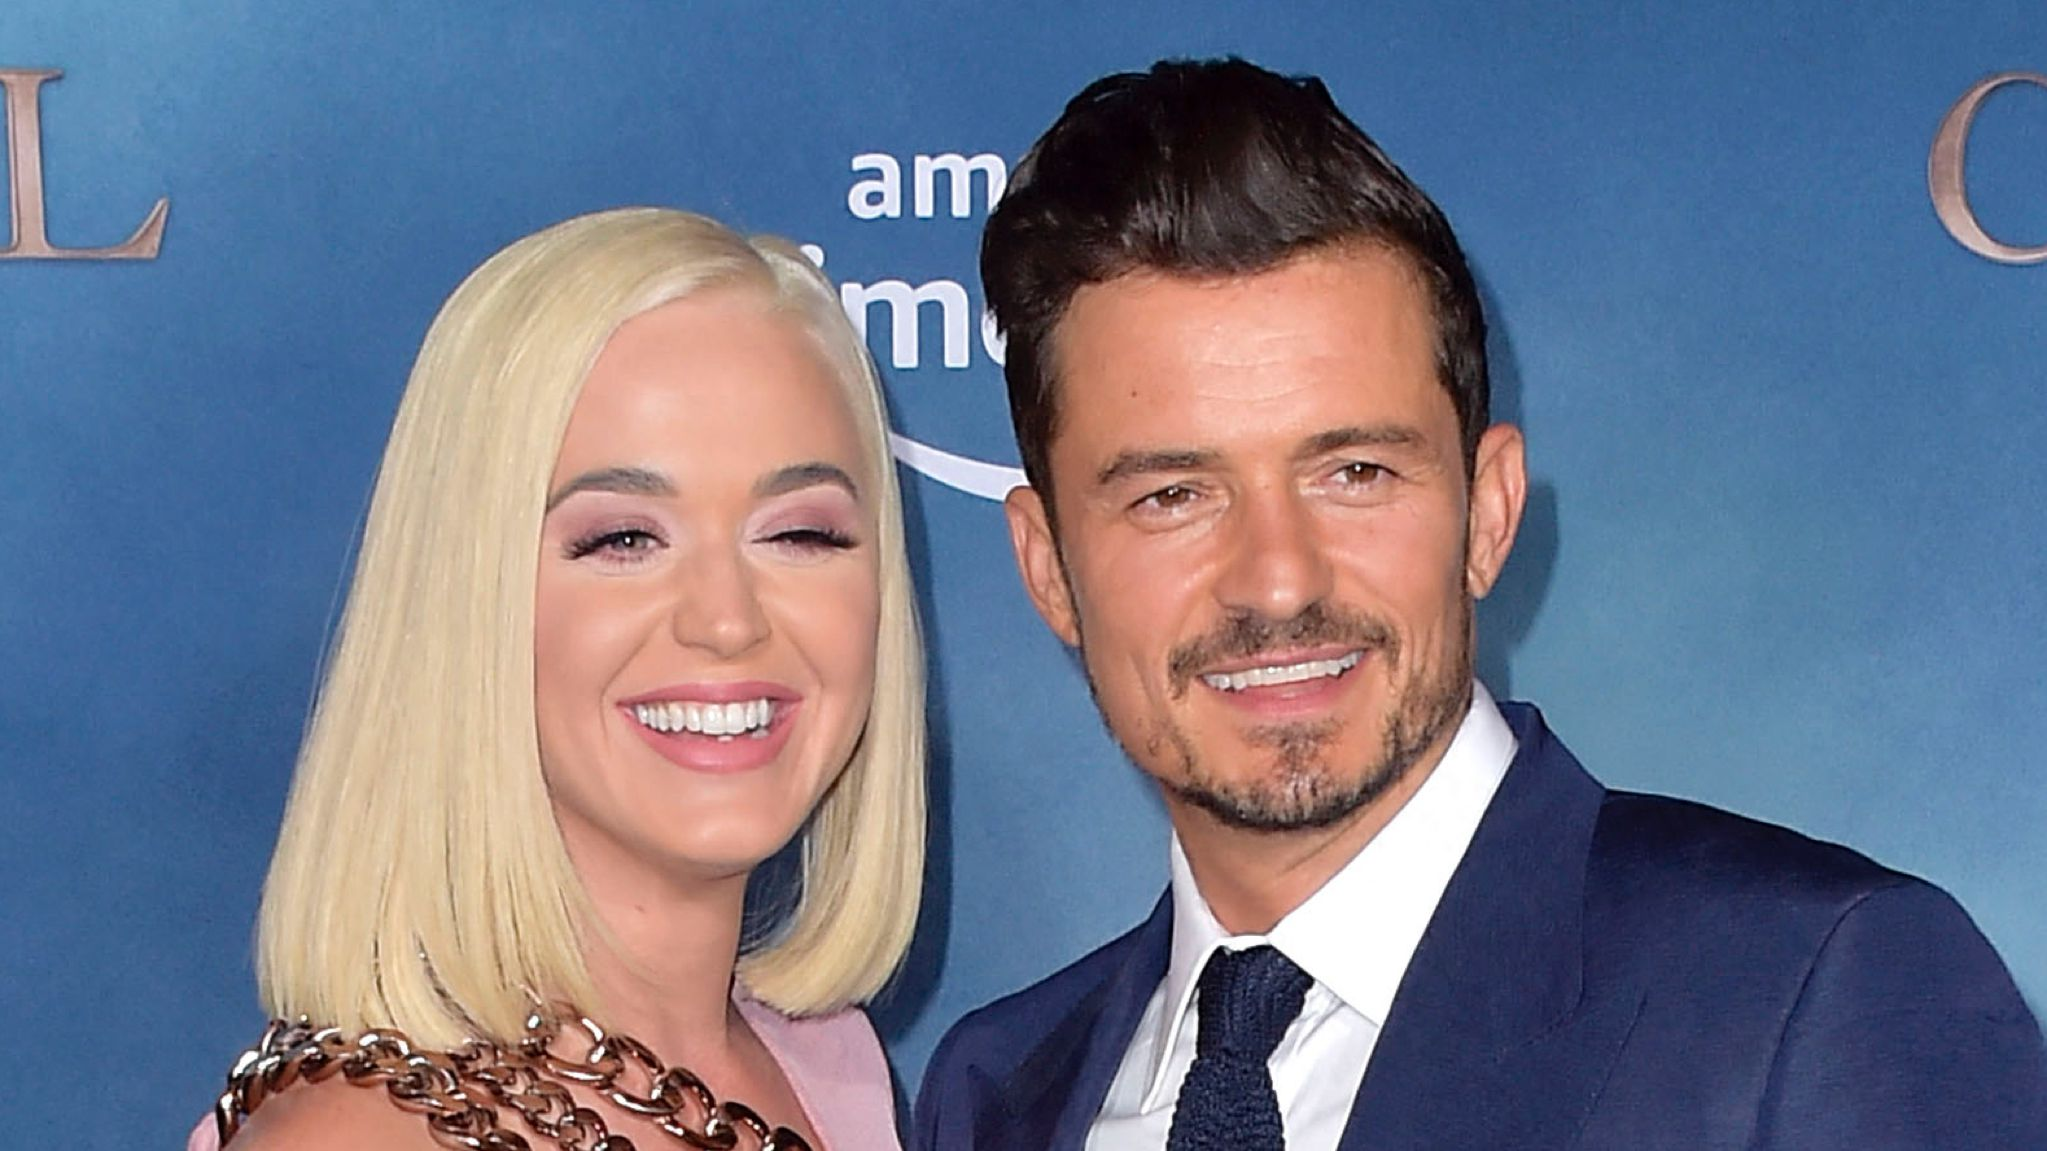 Le couple Katy Perry Orlando Bloom, bientôt parents